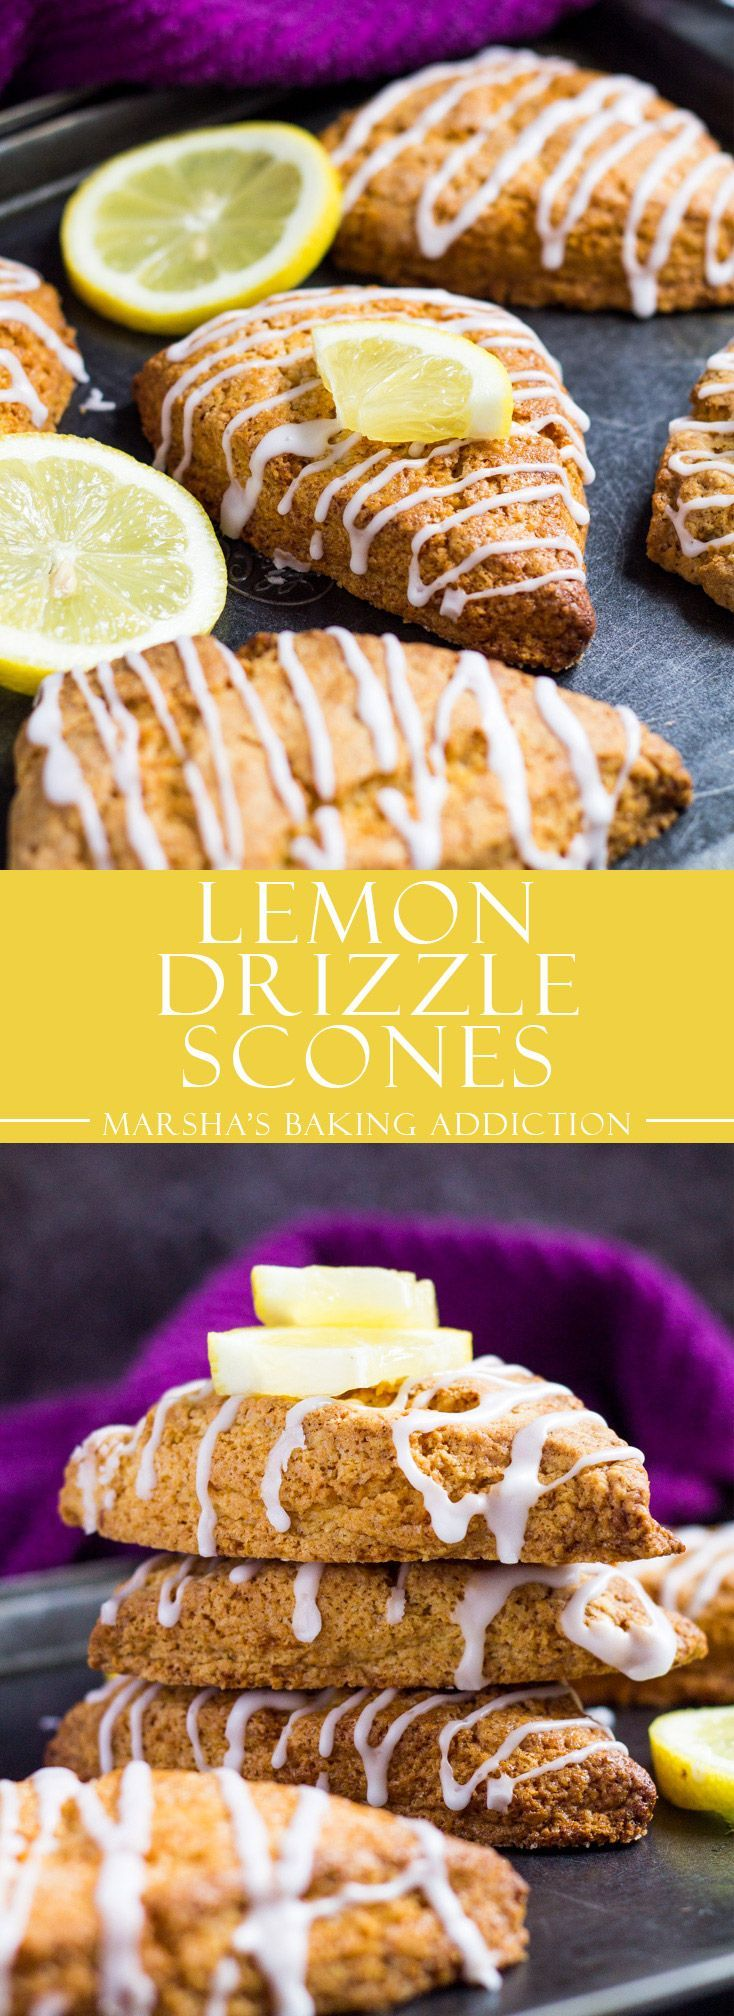 Lemon Drizzle Scones | http://marshasbakingaddiction.com /marshasbakeblog/